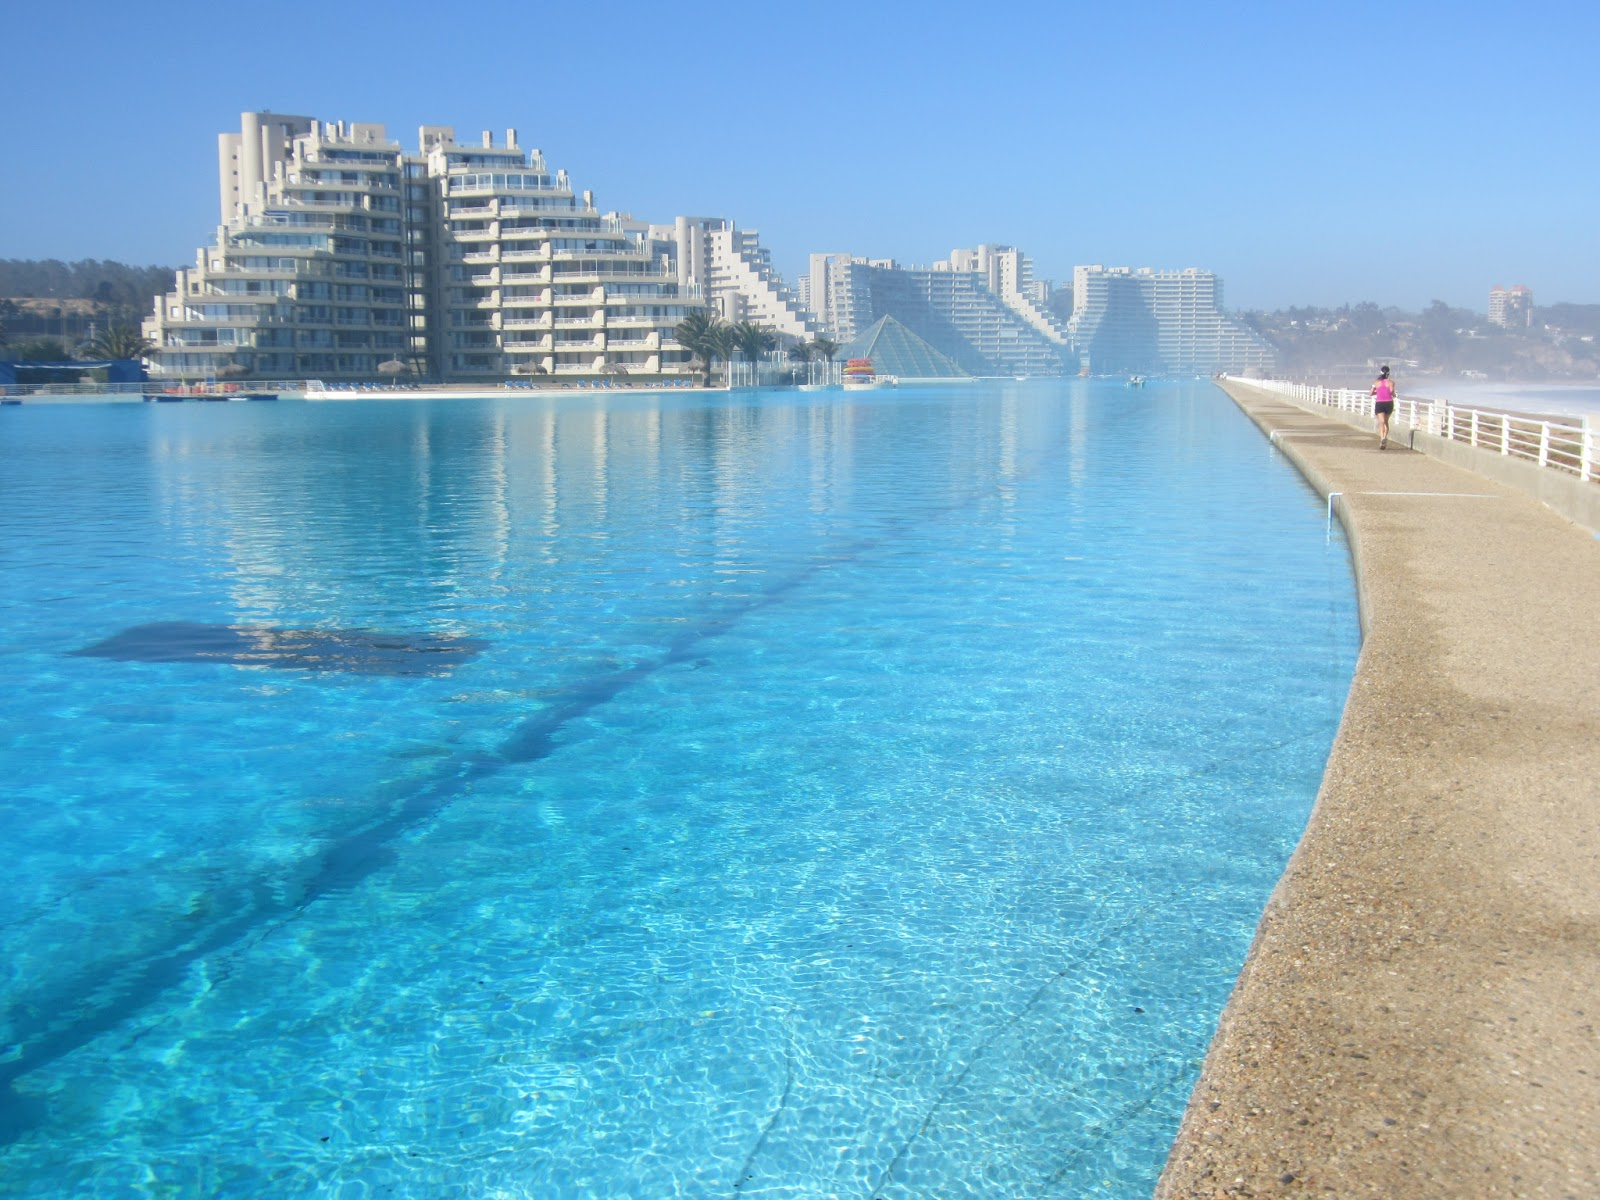 Tourism march 2013 - The biggest swimming pool in chile ...